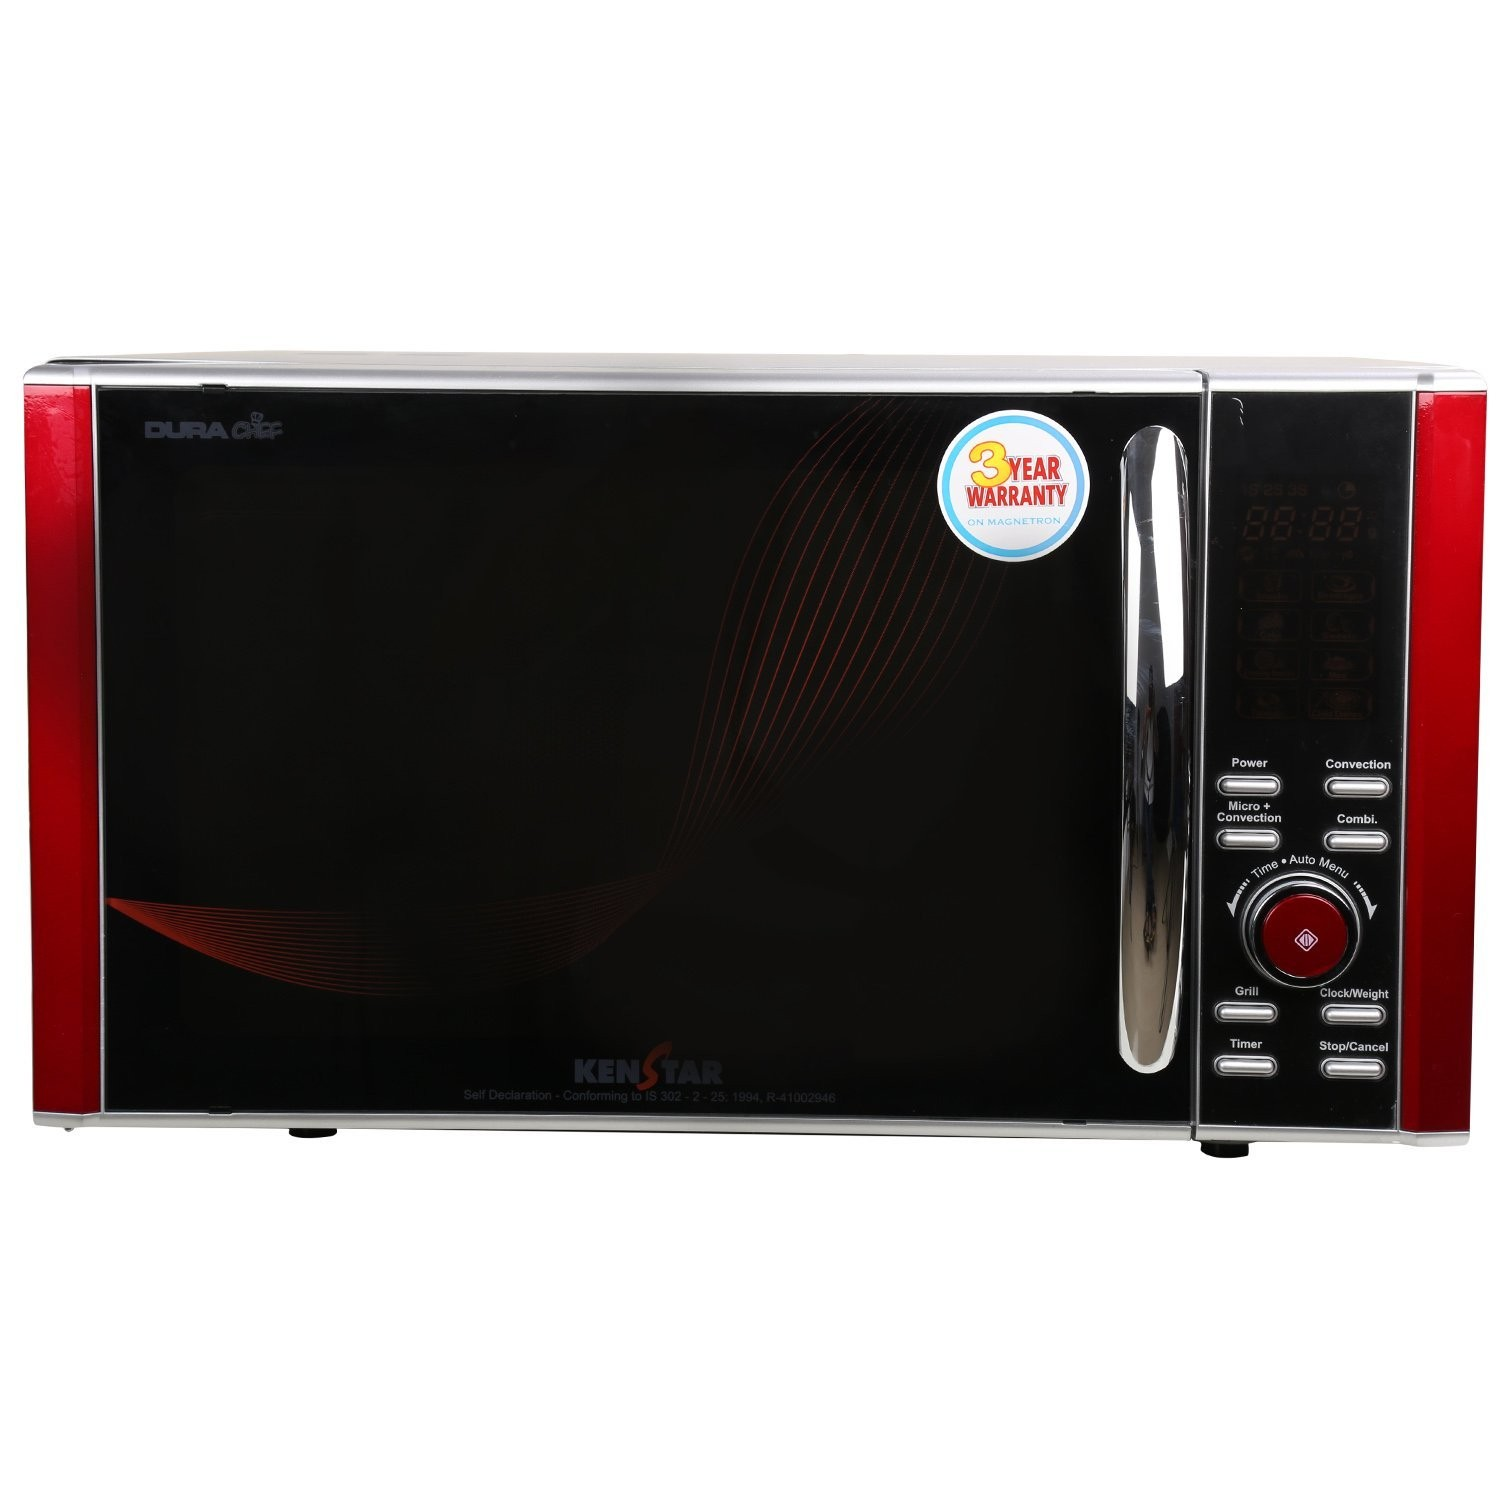 Silver finish Kenstar 25 liters convection microwave oven